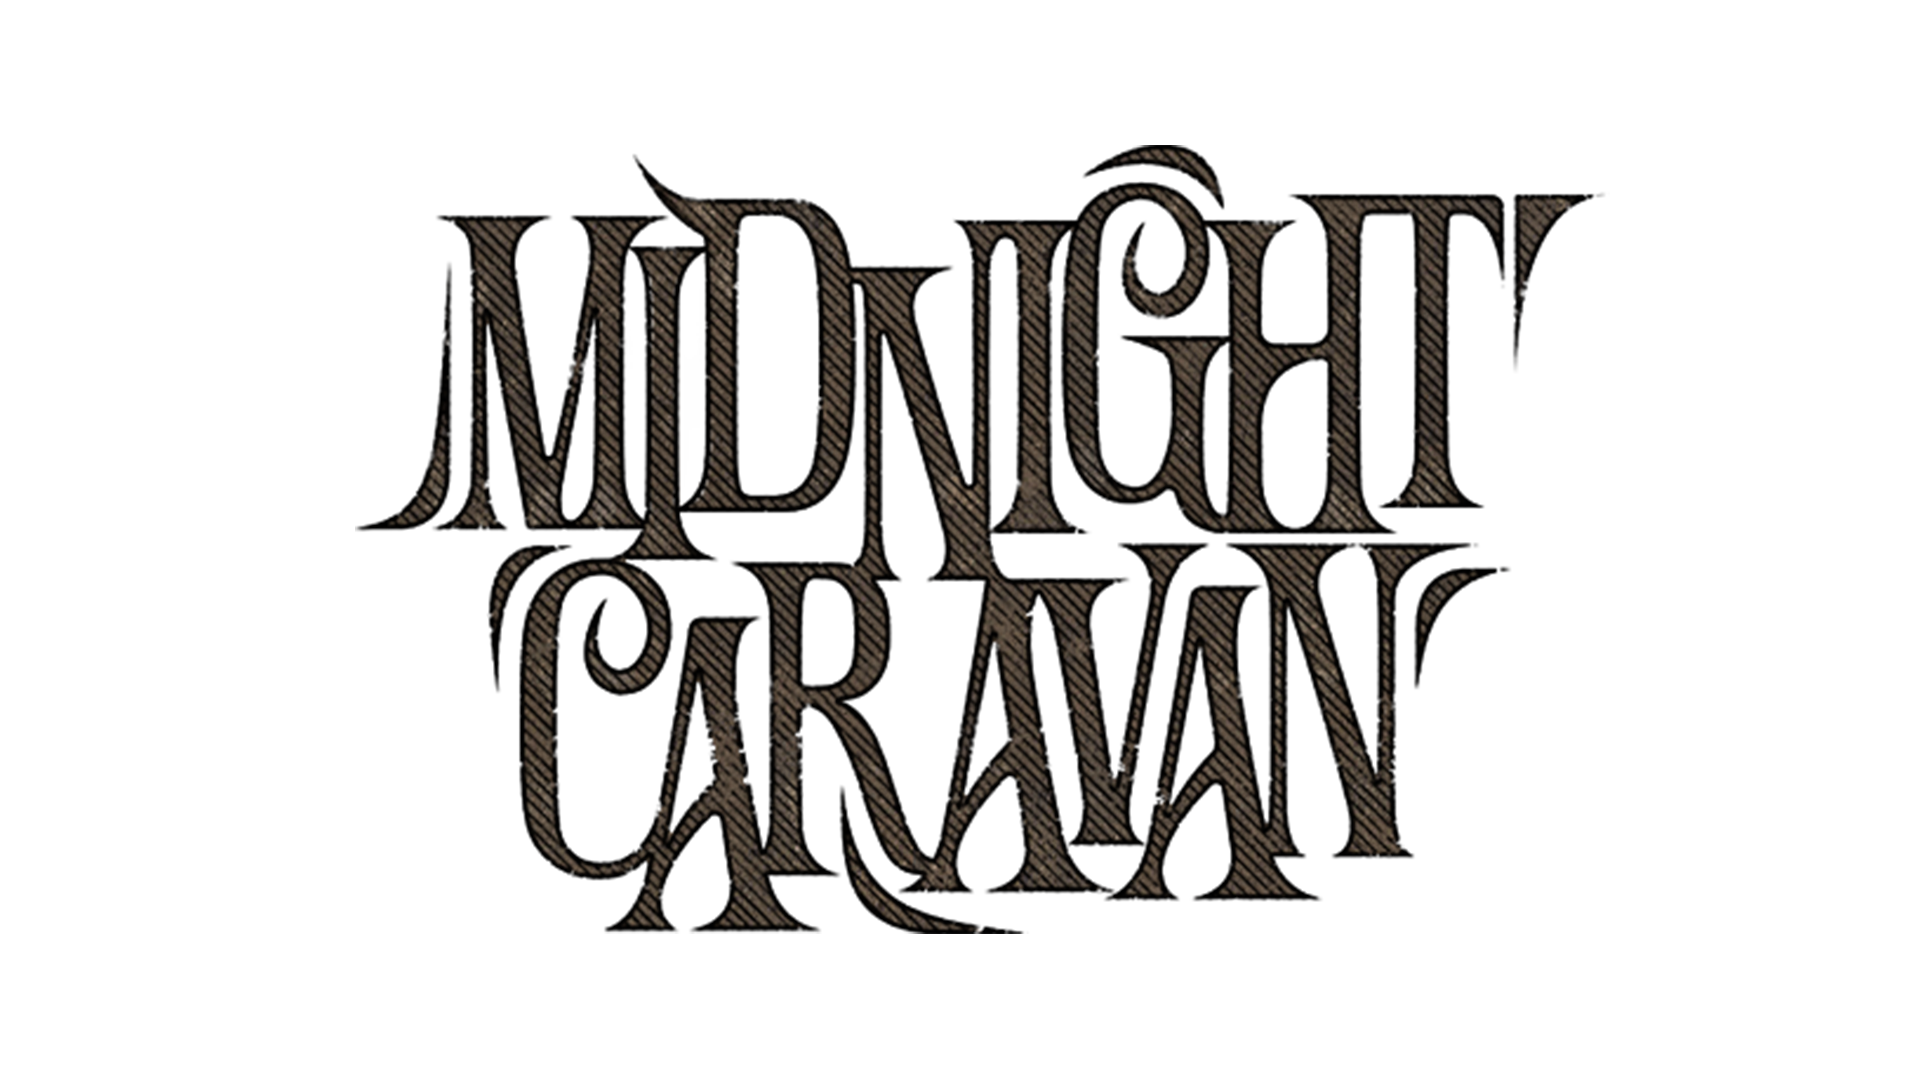 Midnight Caravan entering Steam Early Access on August 24